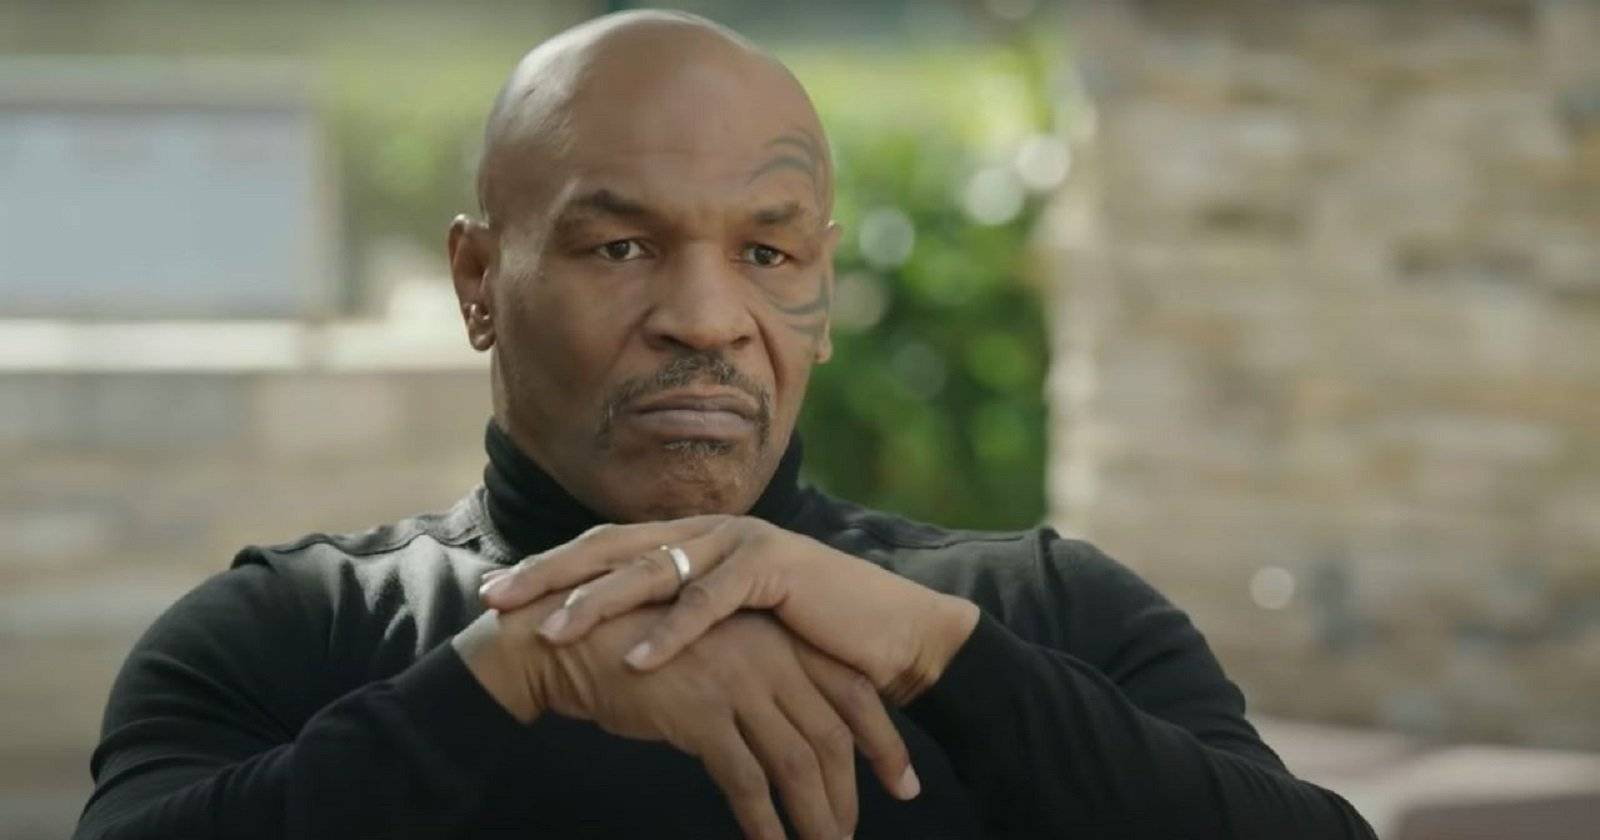 Mike Tyson Makes Bold Claim About 44-Year-Old Floyd Mayweather